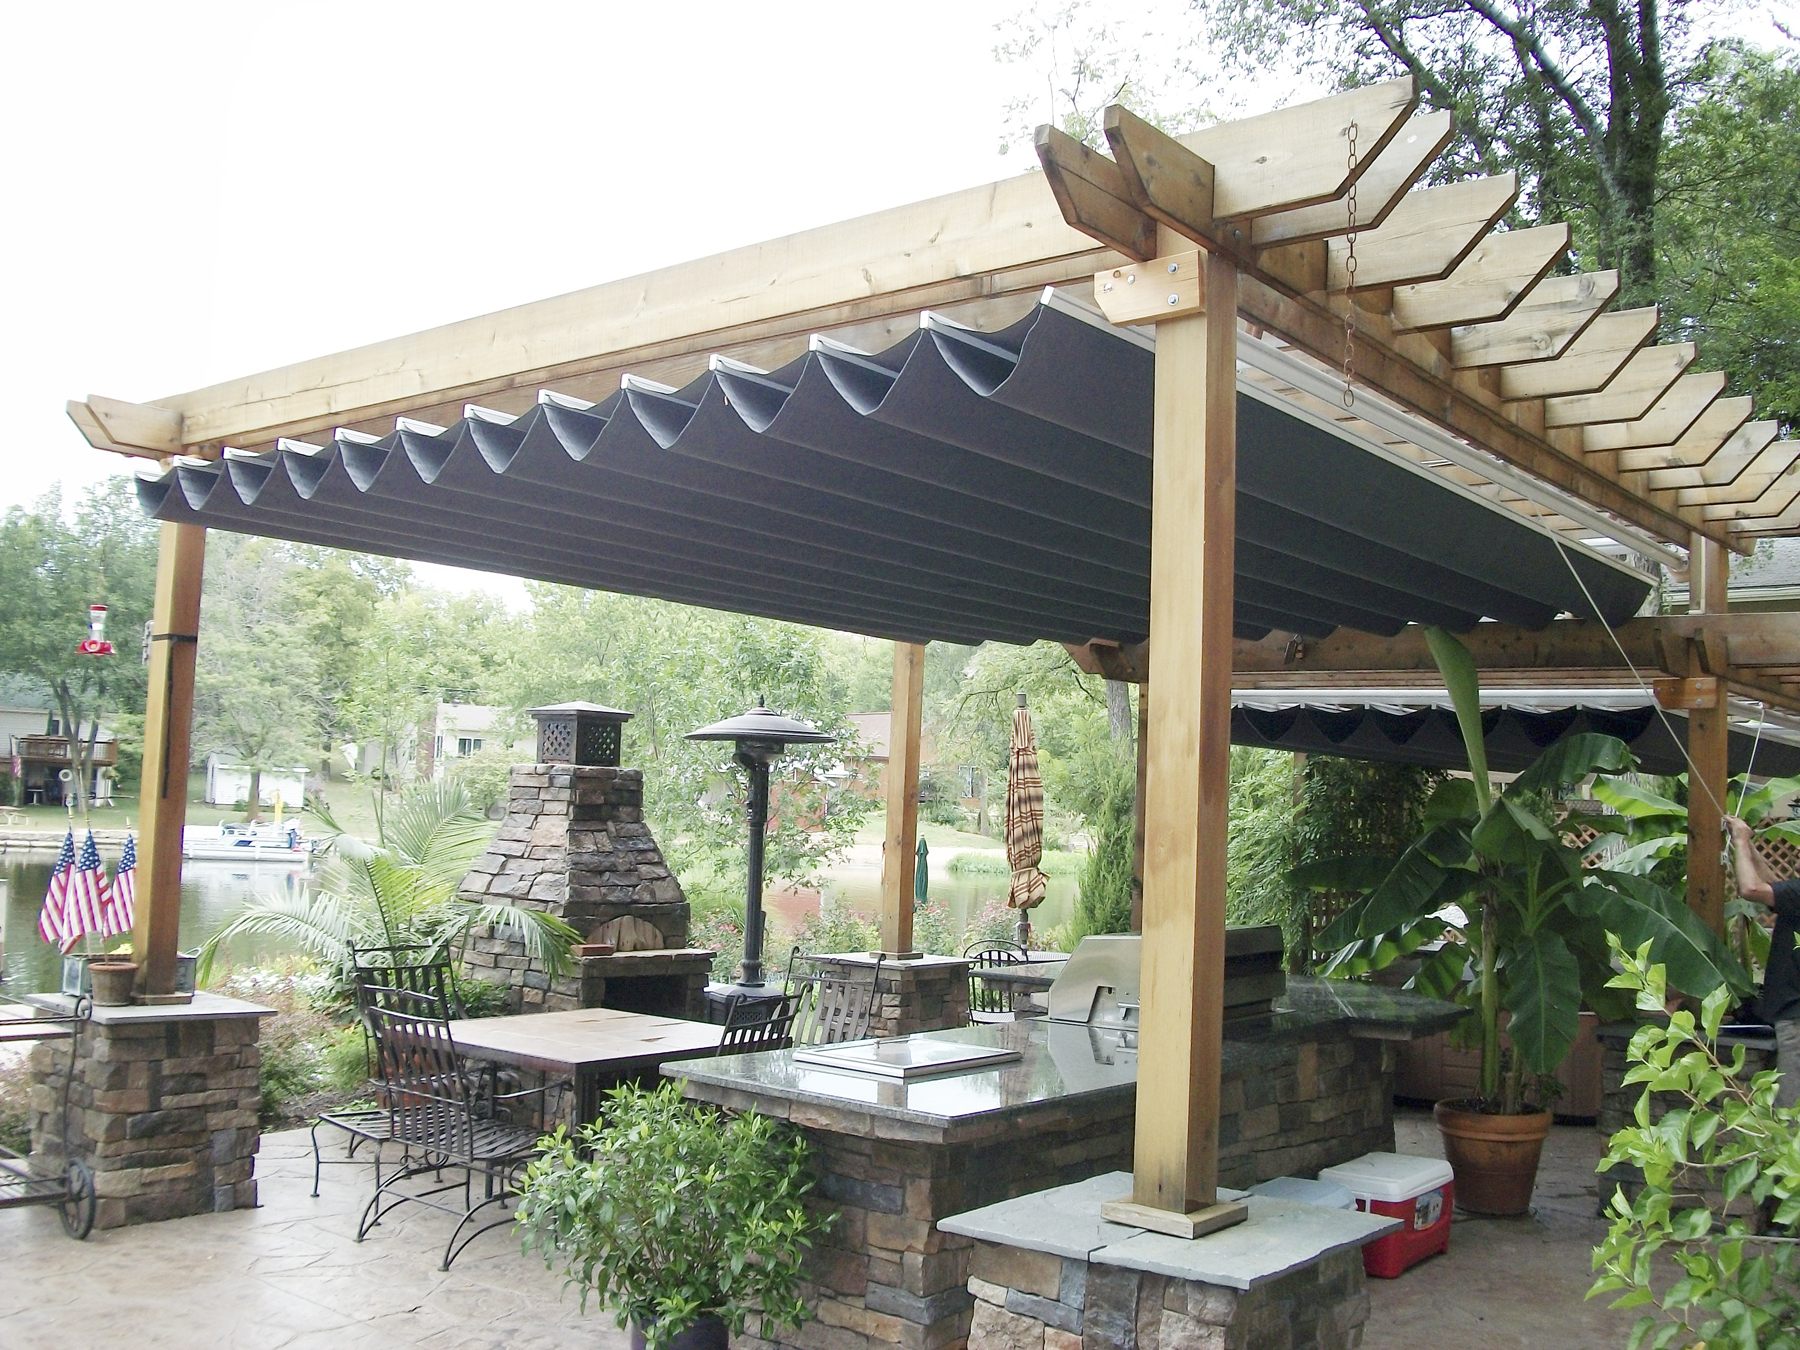 awning glass roof pergola markilux retractable awnings. Black Bedroom Furniture Sets. Home Design Ideas